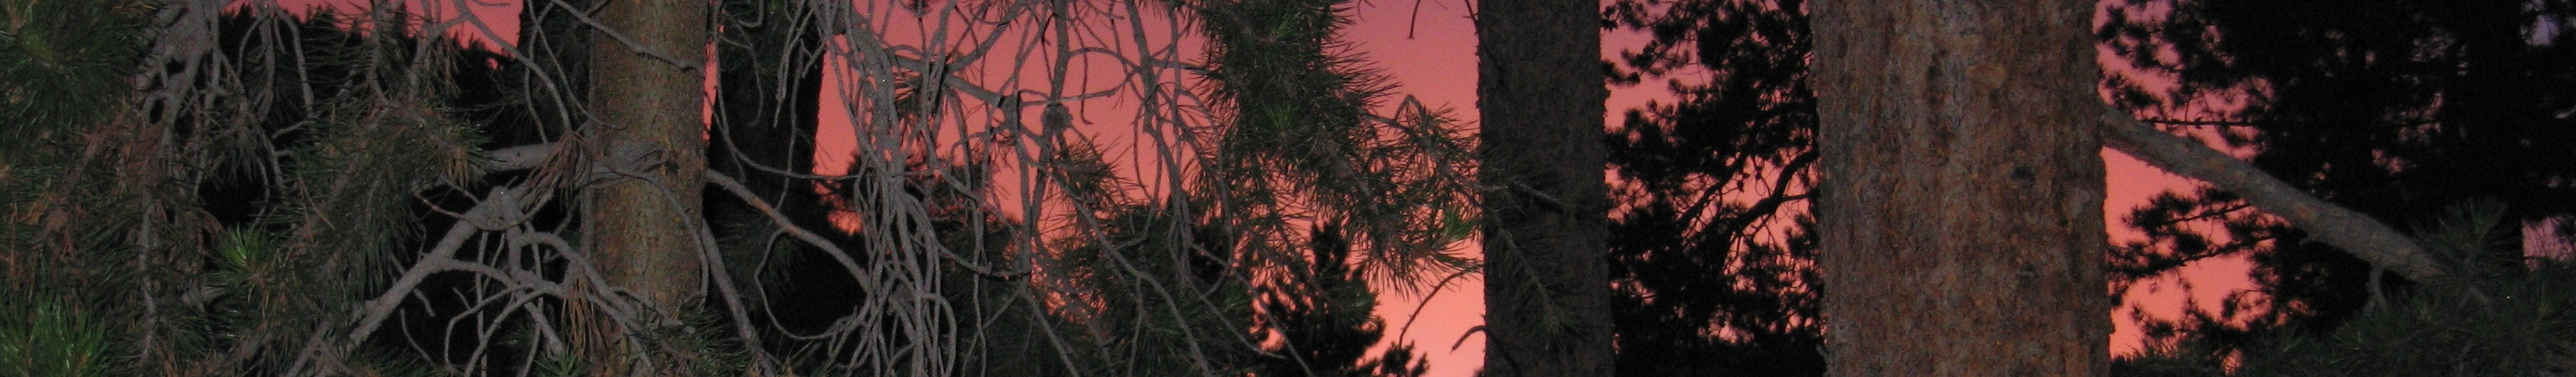 Sunset and pines in our camping spot :: Tennison Canyon, Colorado